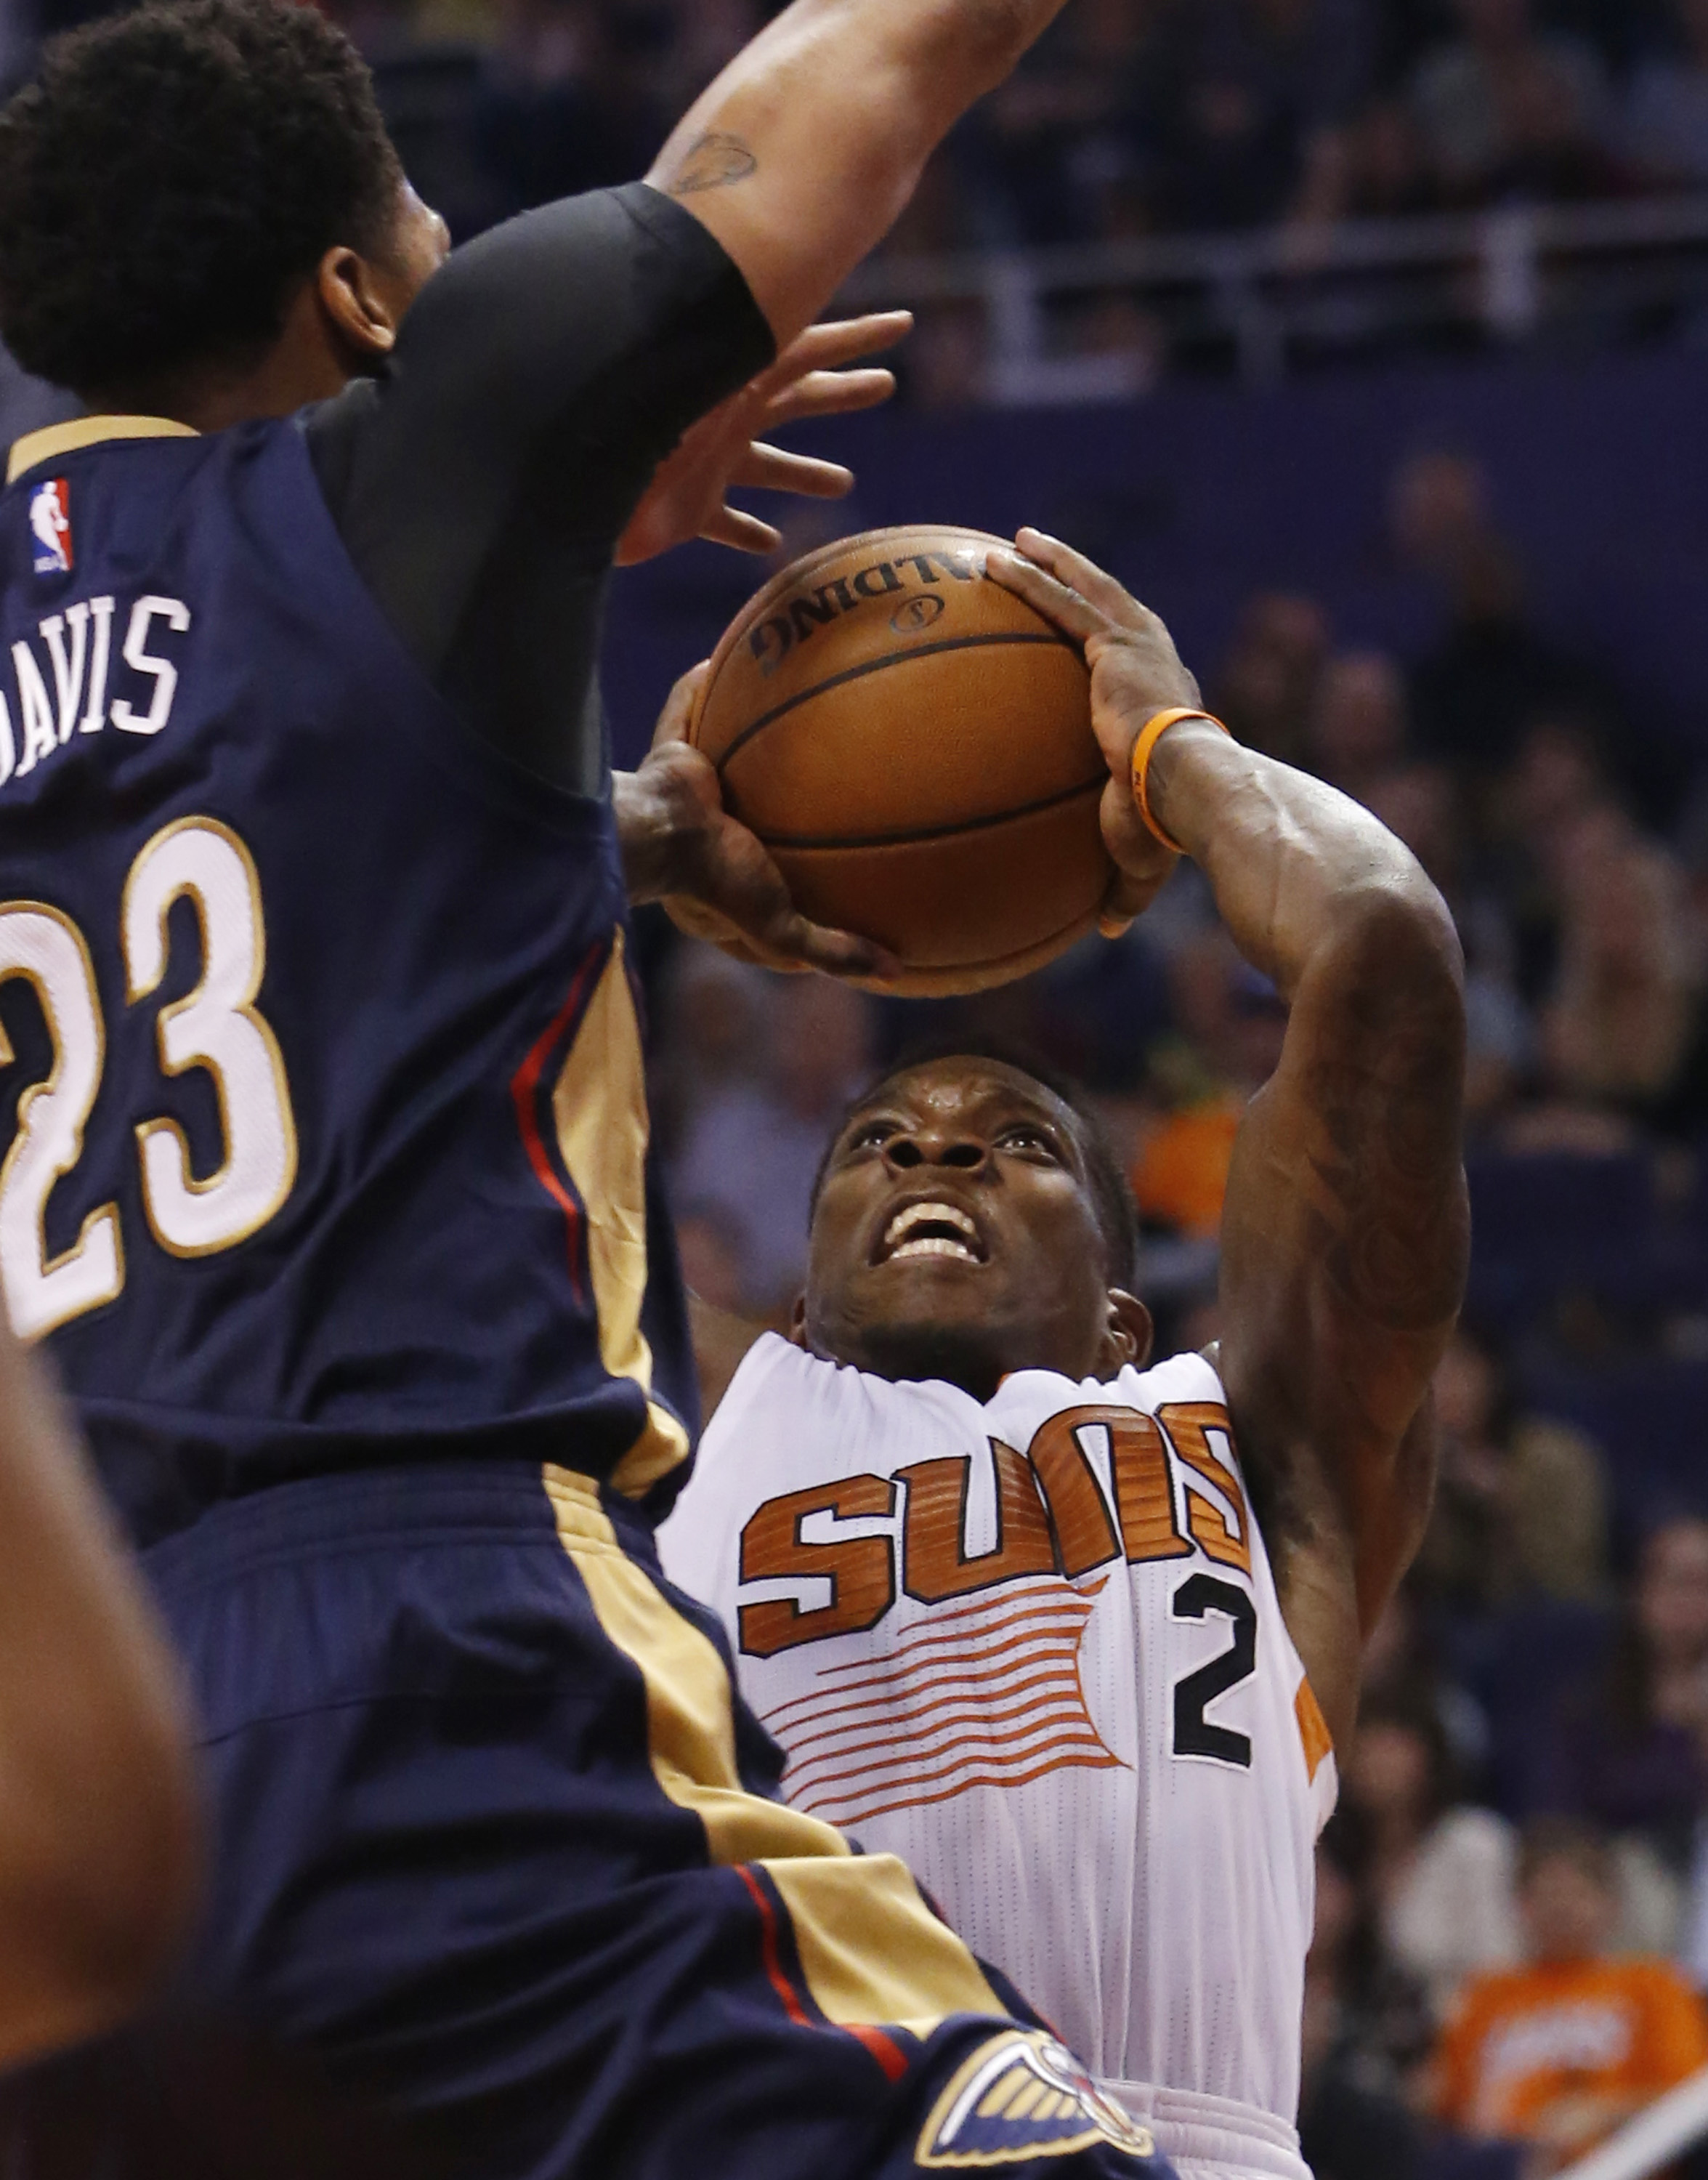 Phoenix Suns guard Eric Bledsoe (2) shoots in front of New Orleans Pelicans forward Anthony Davis during the third quarter of an NBA basketball game, Wednesday, Nov. 25, 2015, in Phoenix. (AP Photo/Rick Scuteri)